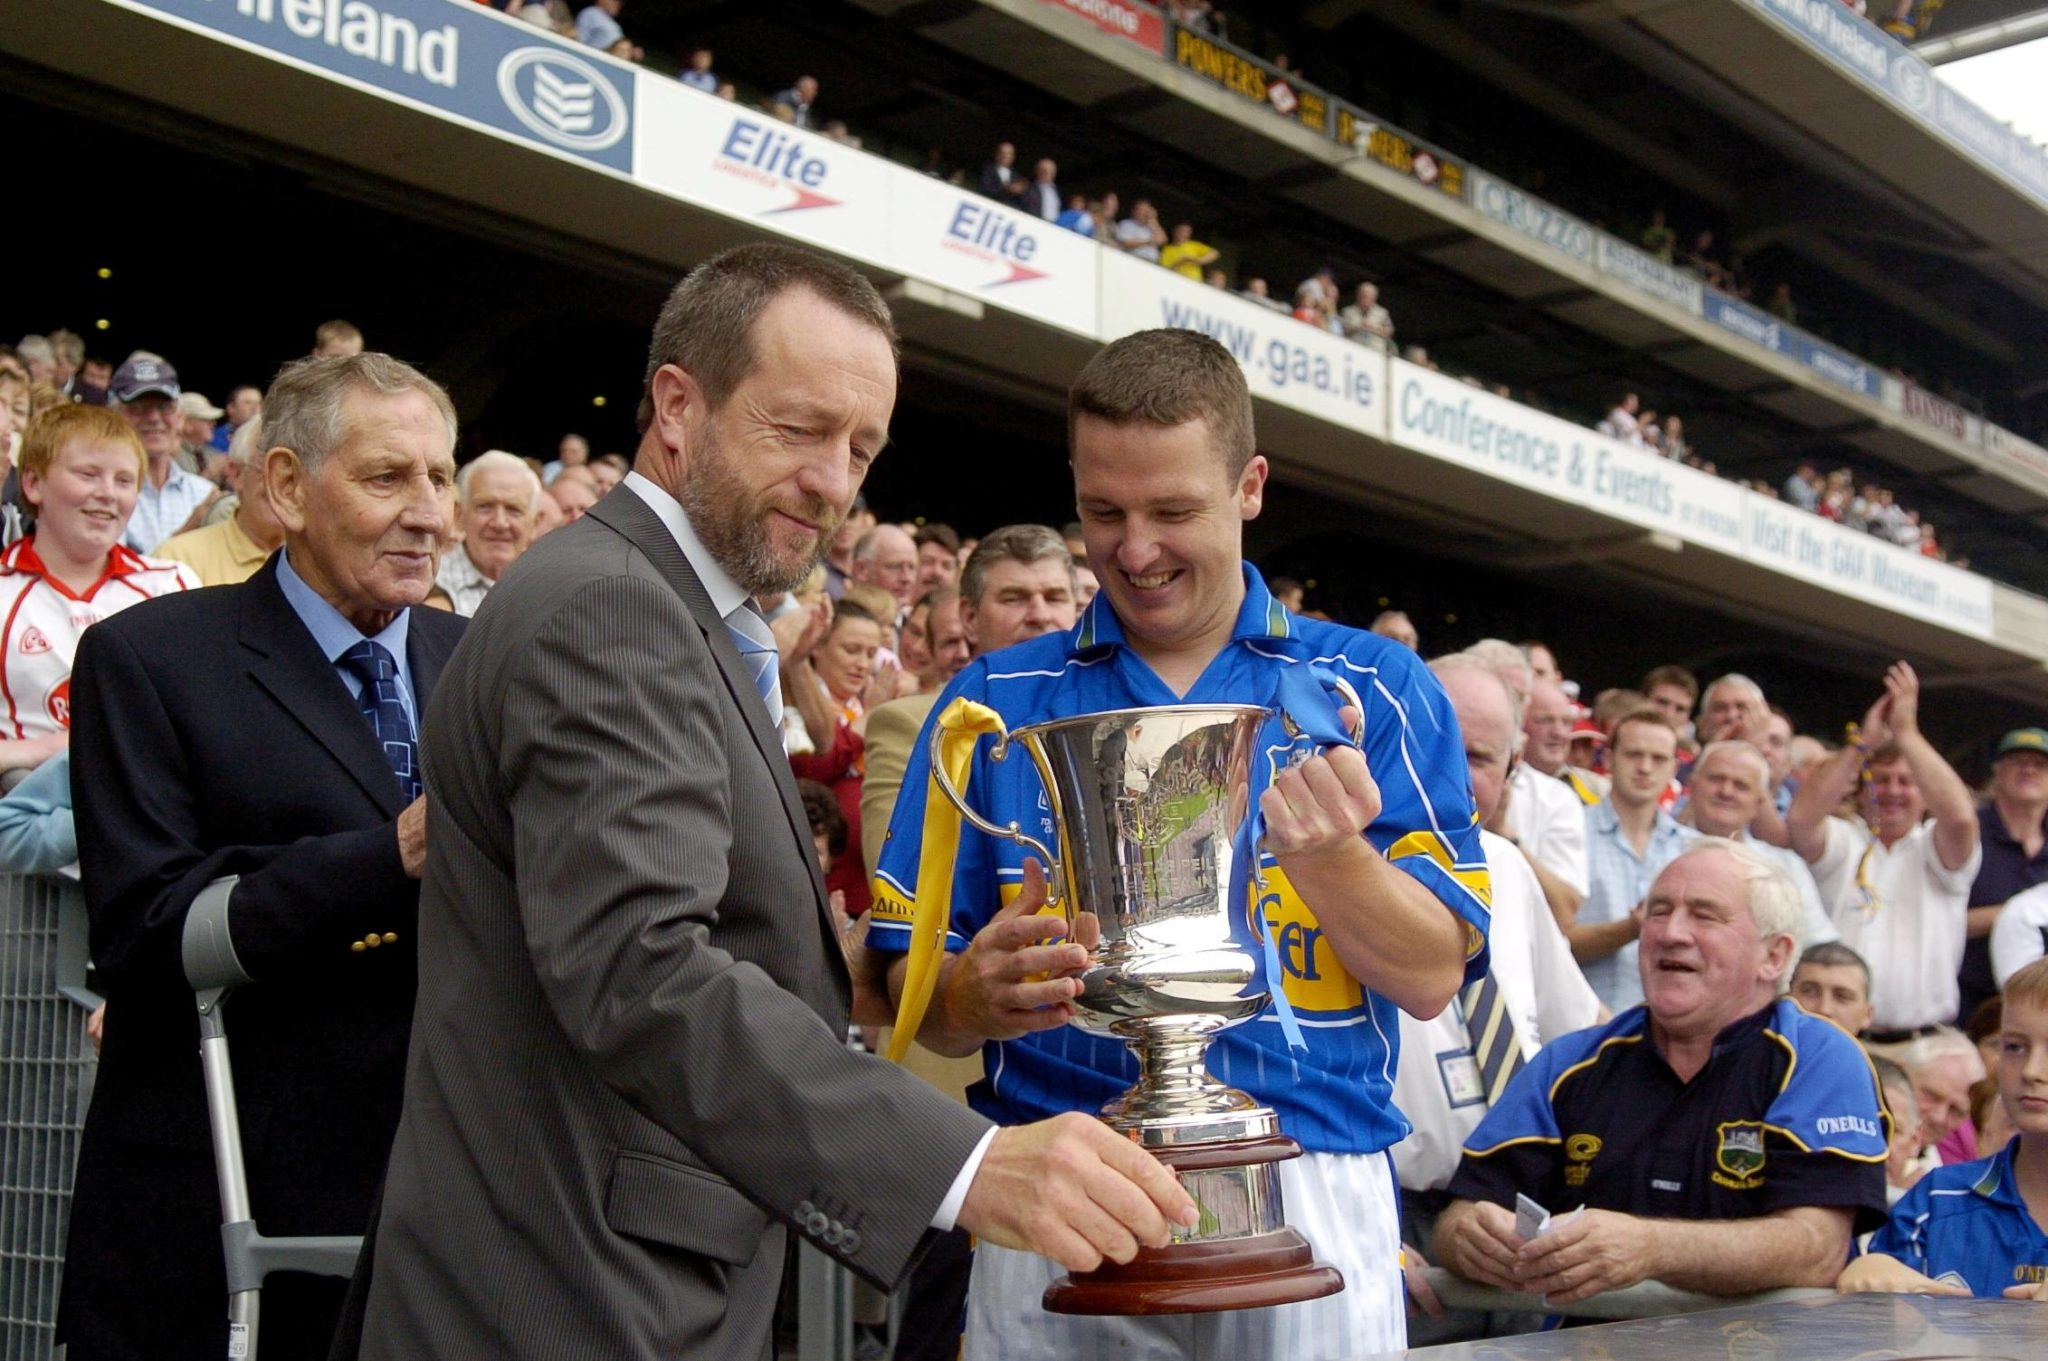 Former GAA star, Declan Browne lifts the Tommy Murphy Cup for Tipperary.